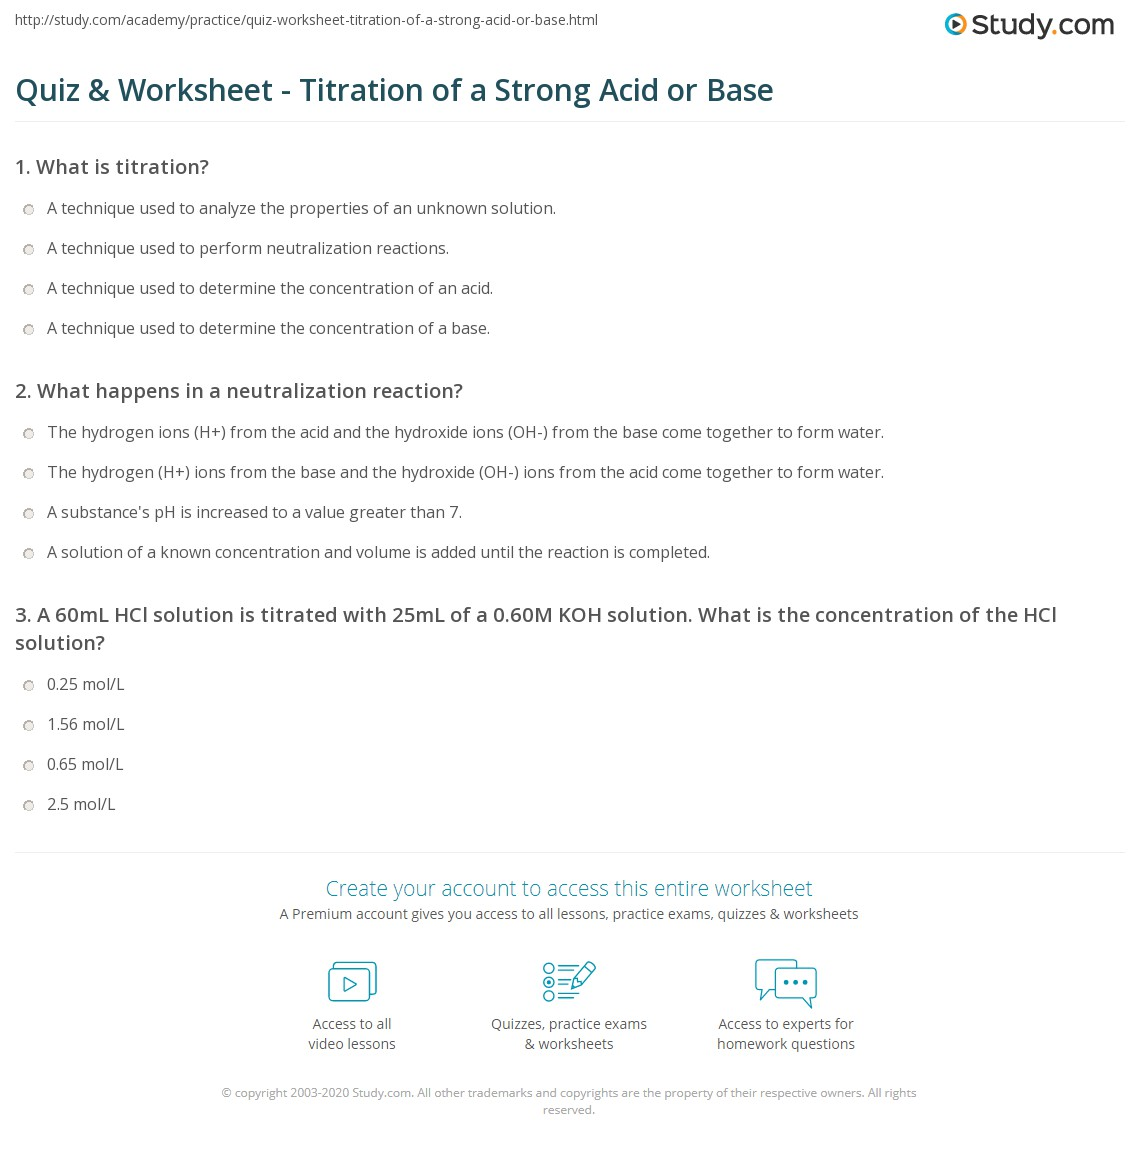 quiz worksheet titration of a strong acid or base. Black Bedroom Furniture Sets. Home Design Ideas